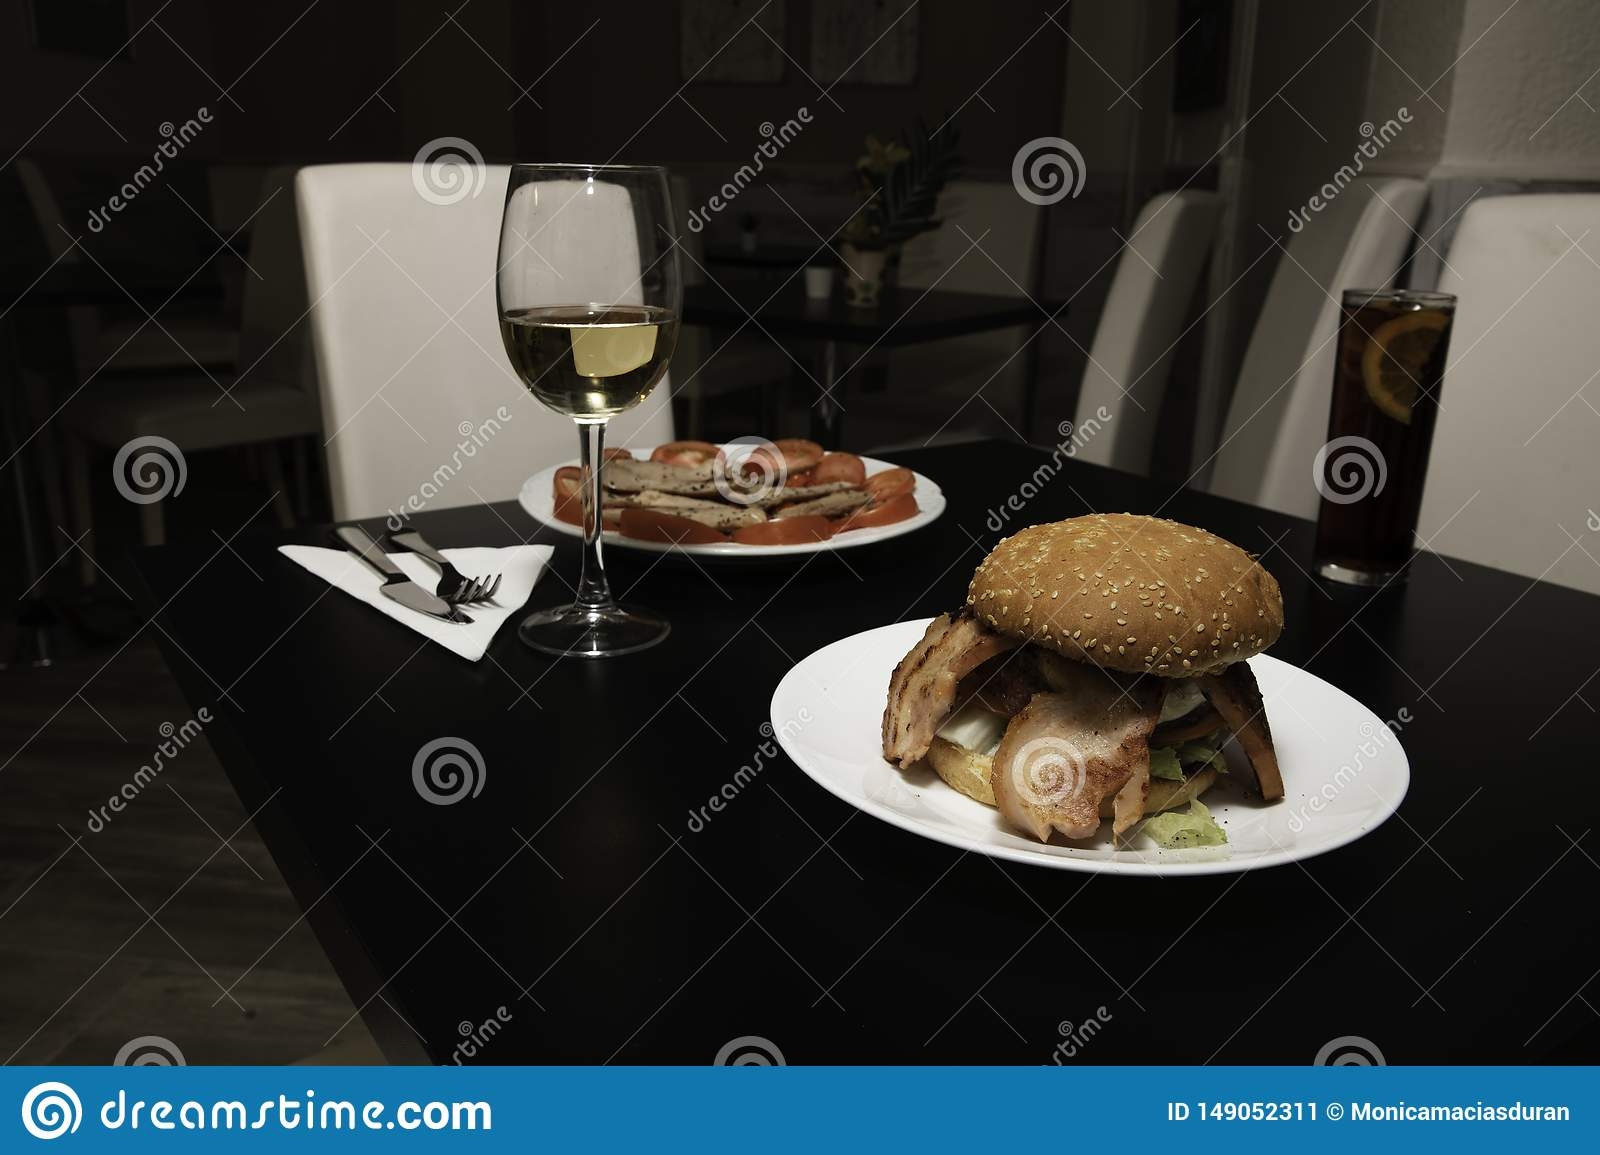 Delicious table set to eat, a delicious burger with a glass of wine and another dish more